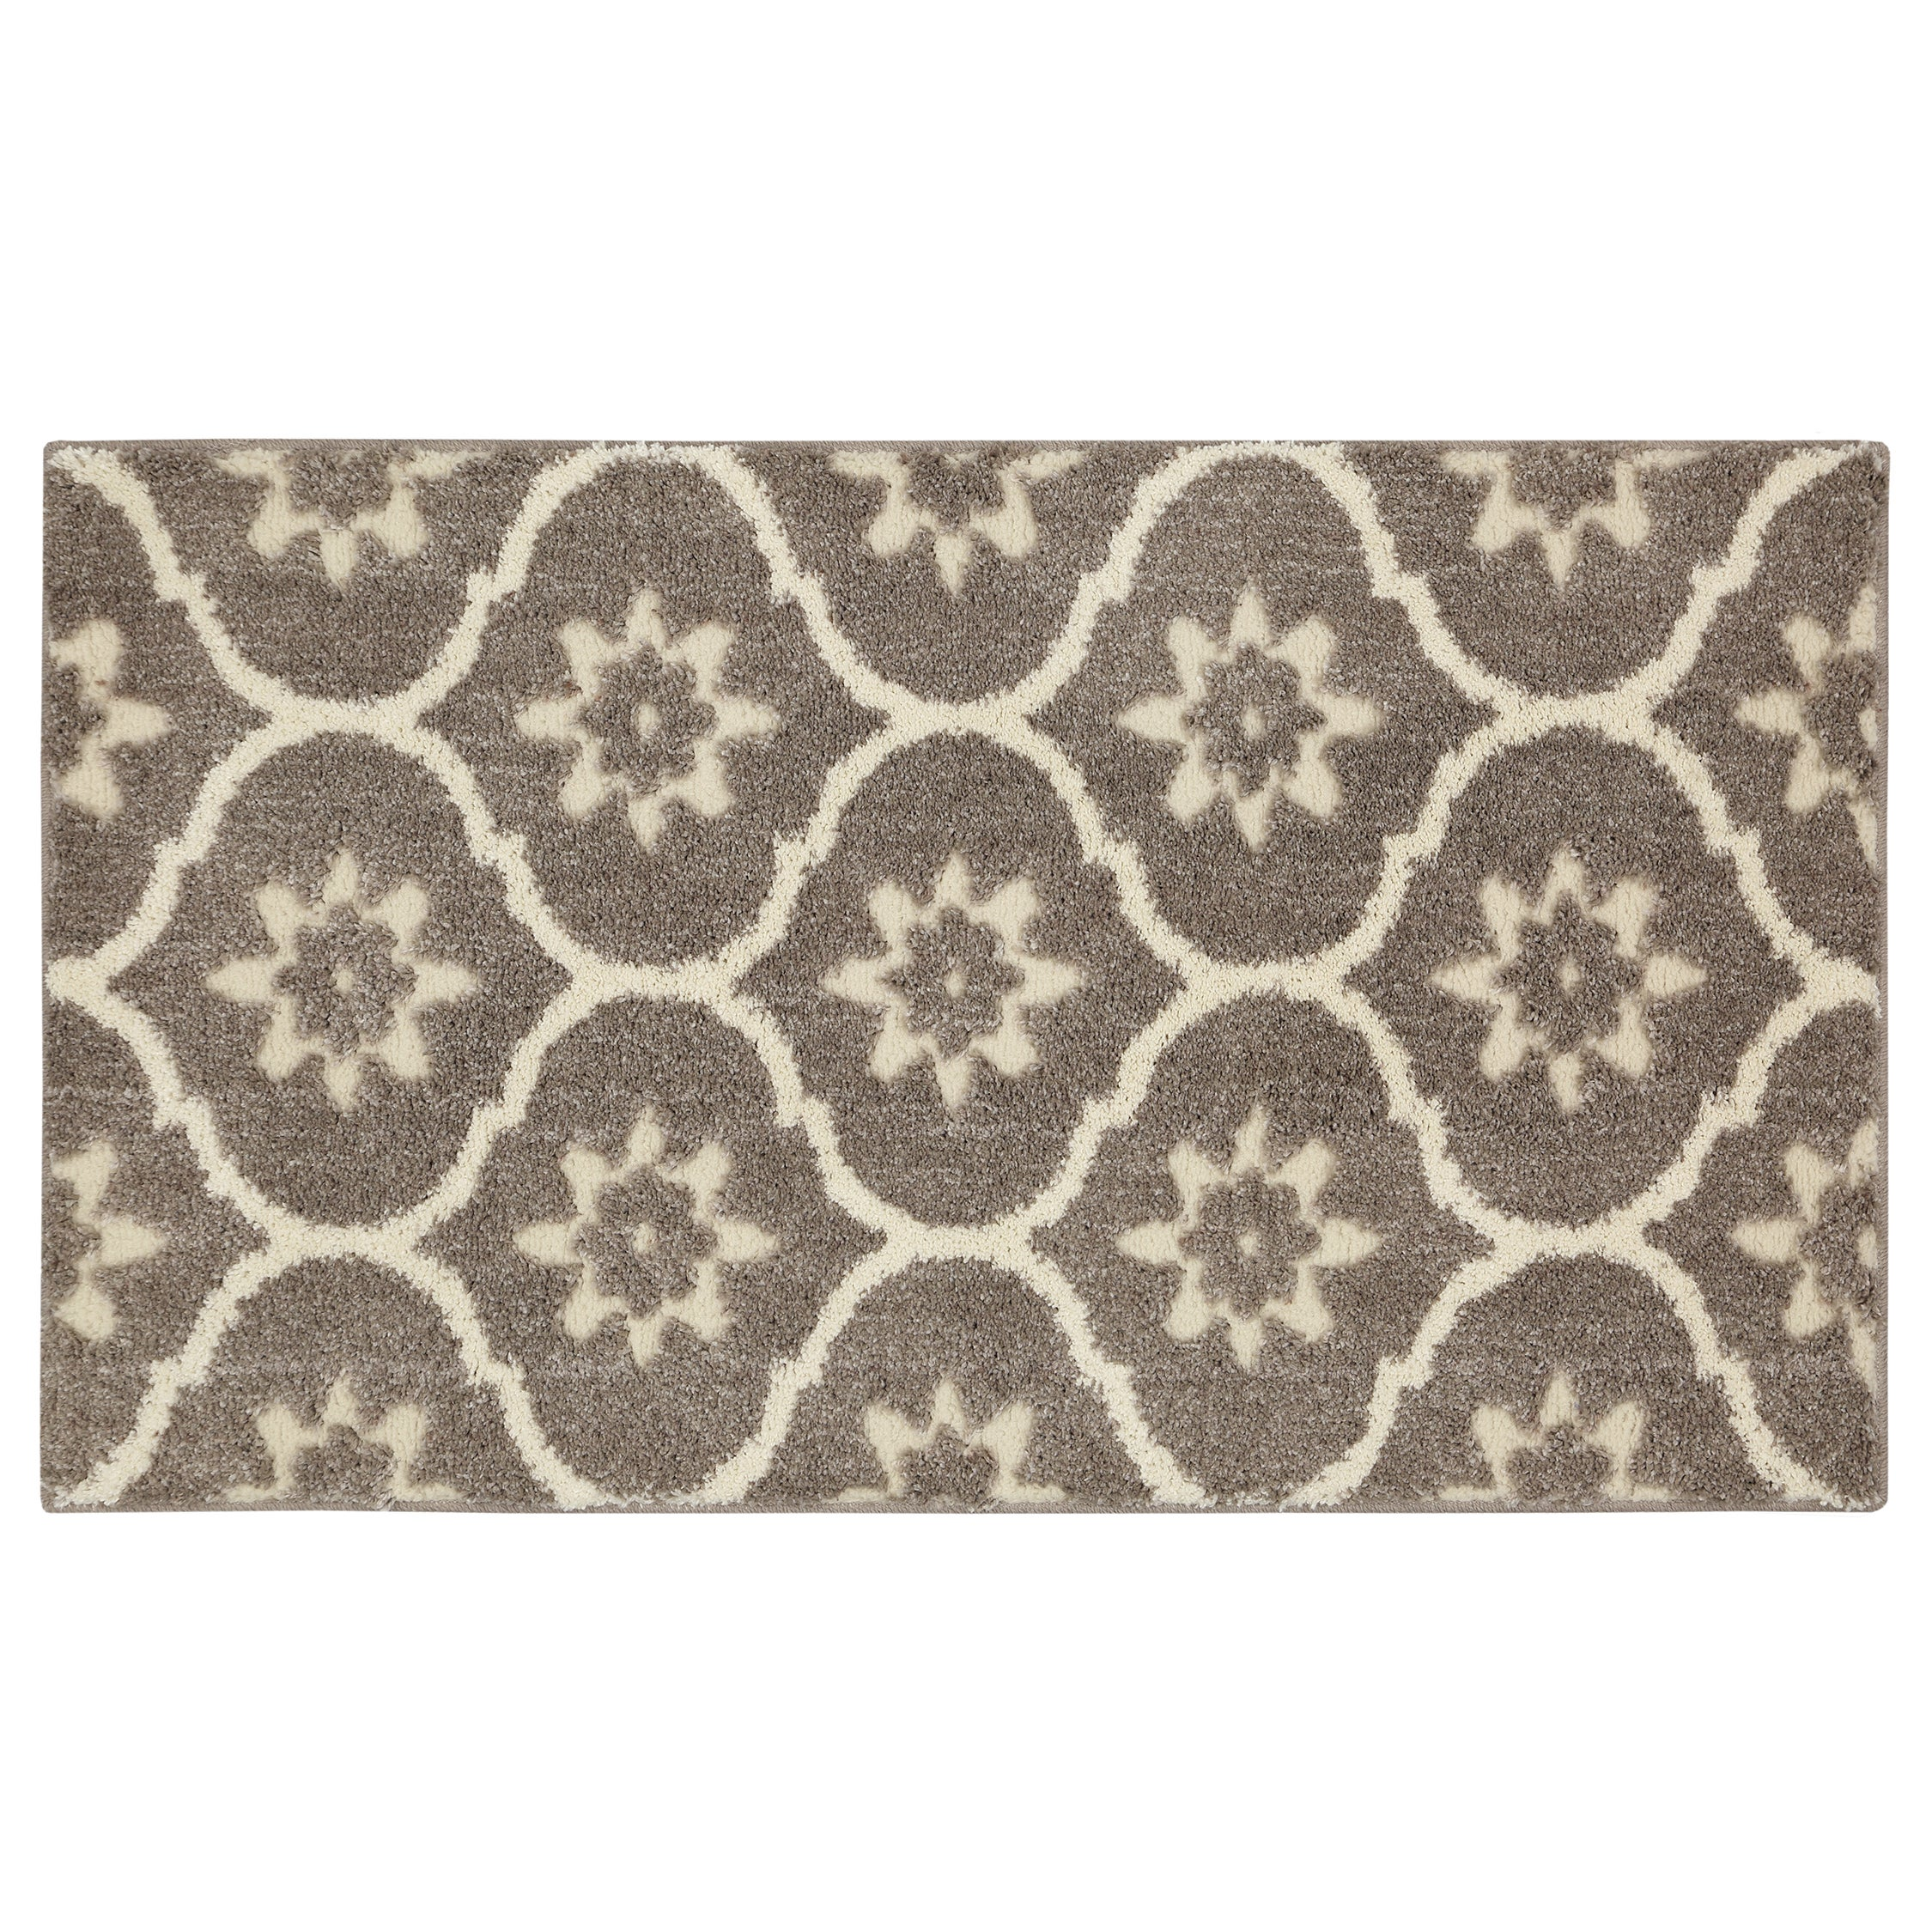 MOHAWK Home Loft Gray Tiles Grey Area Rug (2'1 x 3'8) (Gr...